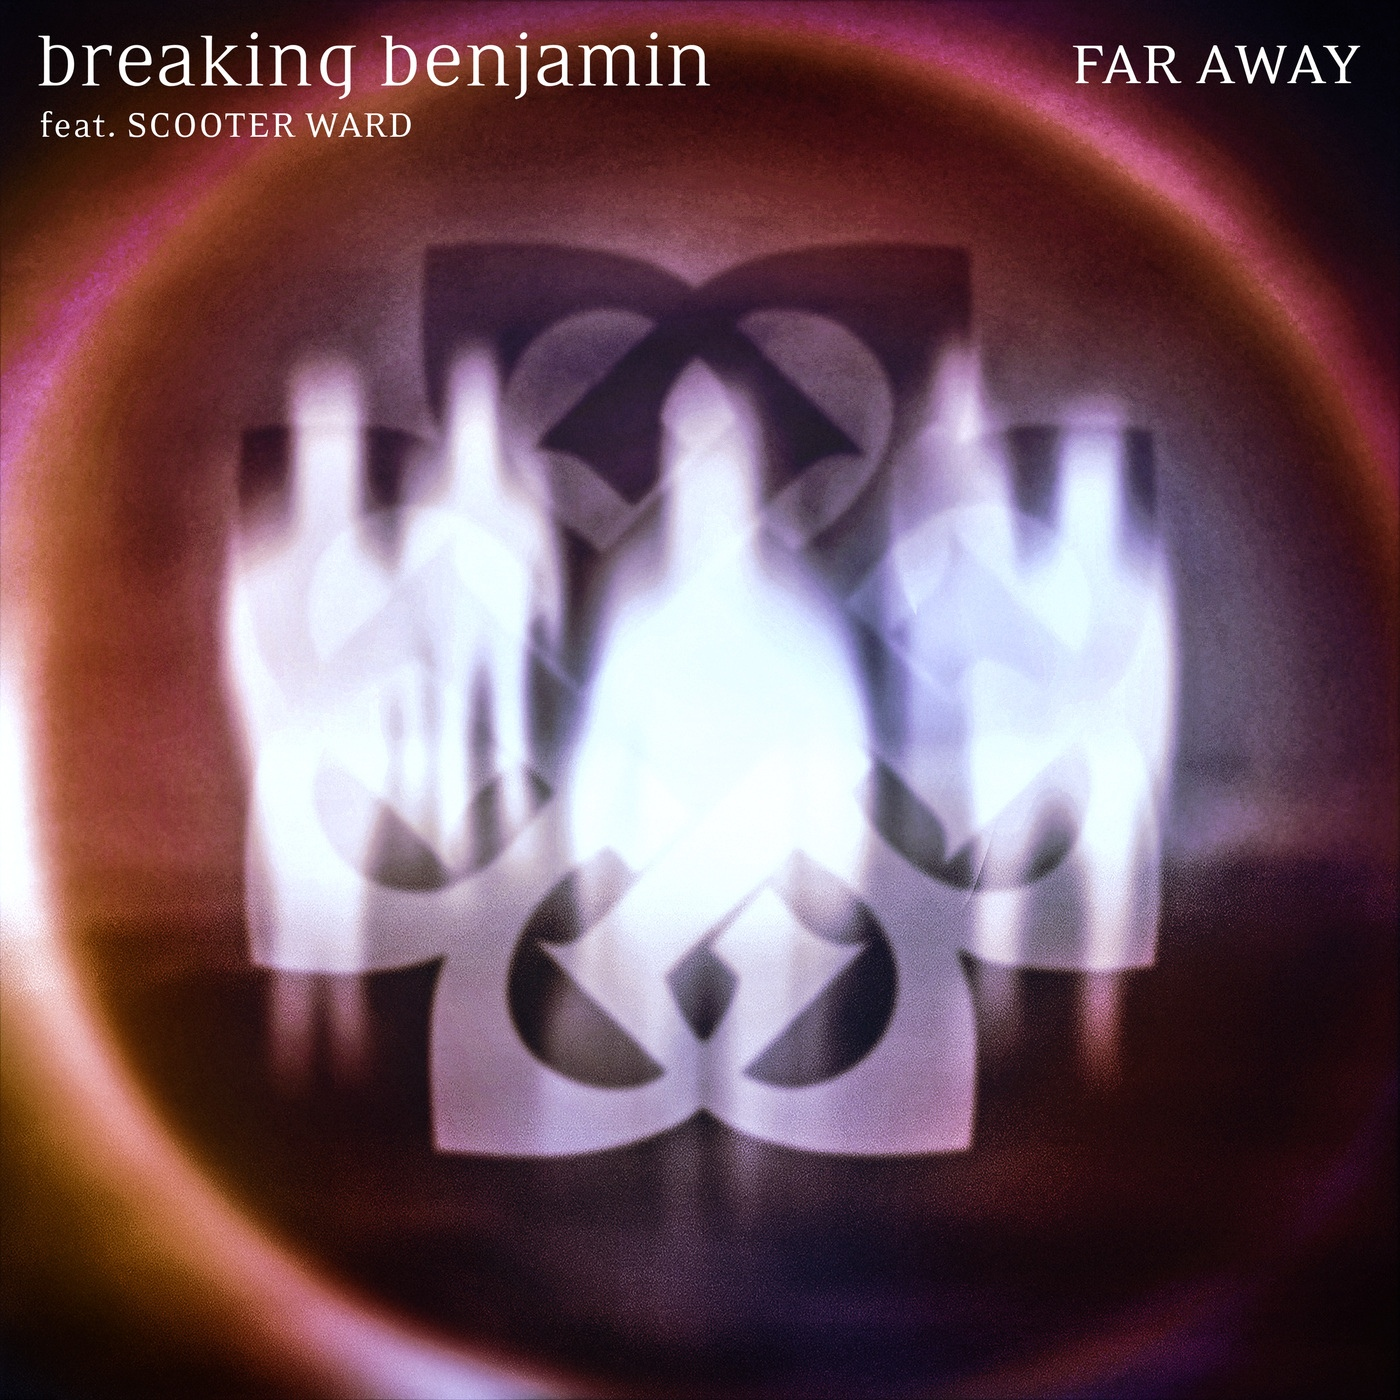 Breaking Benjamin - Far Away (Single)